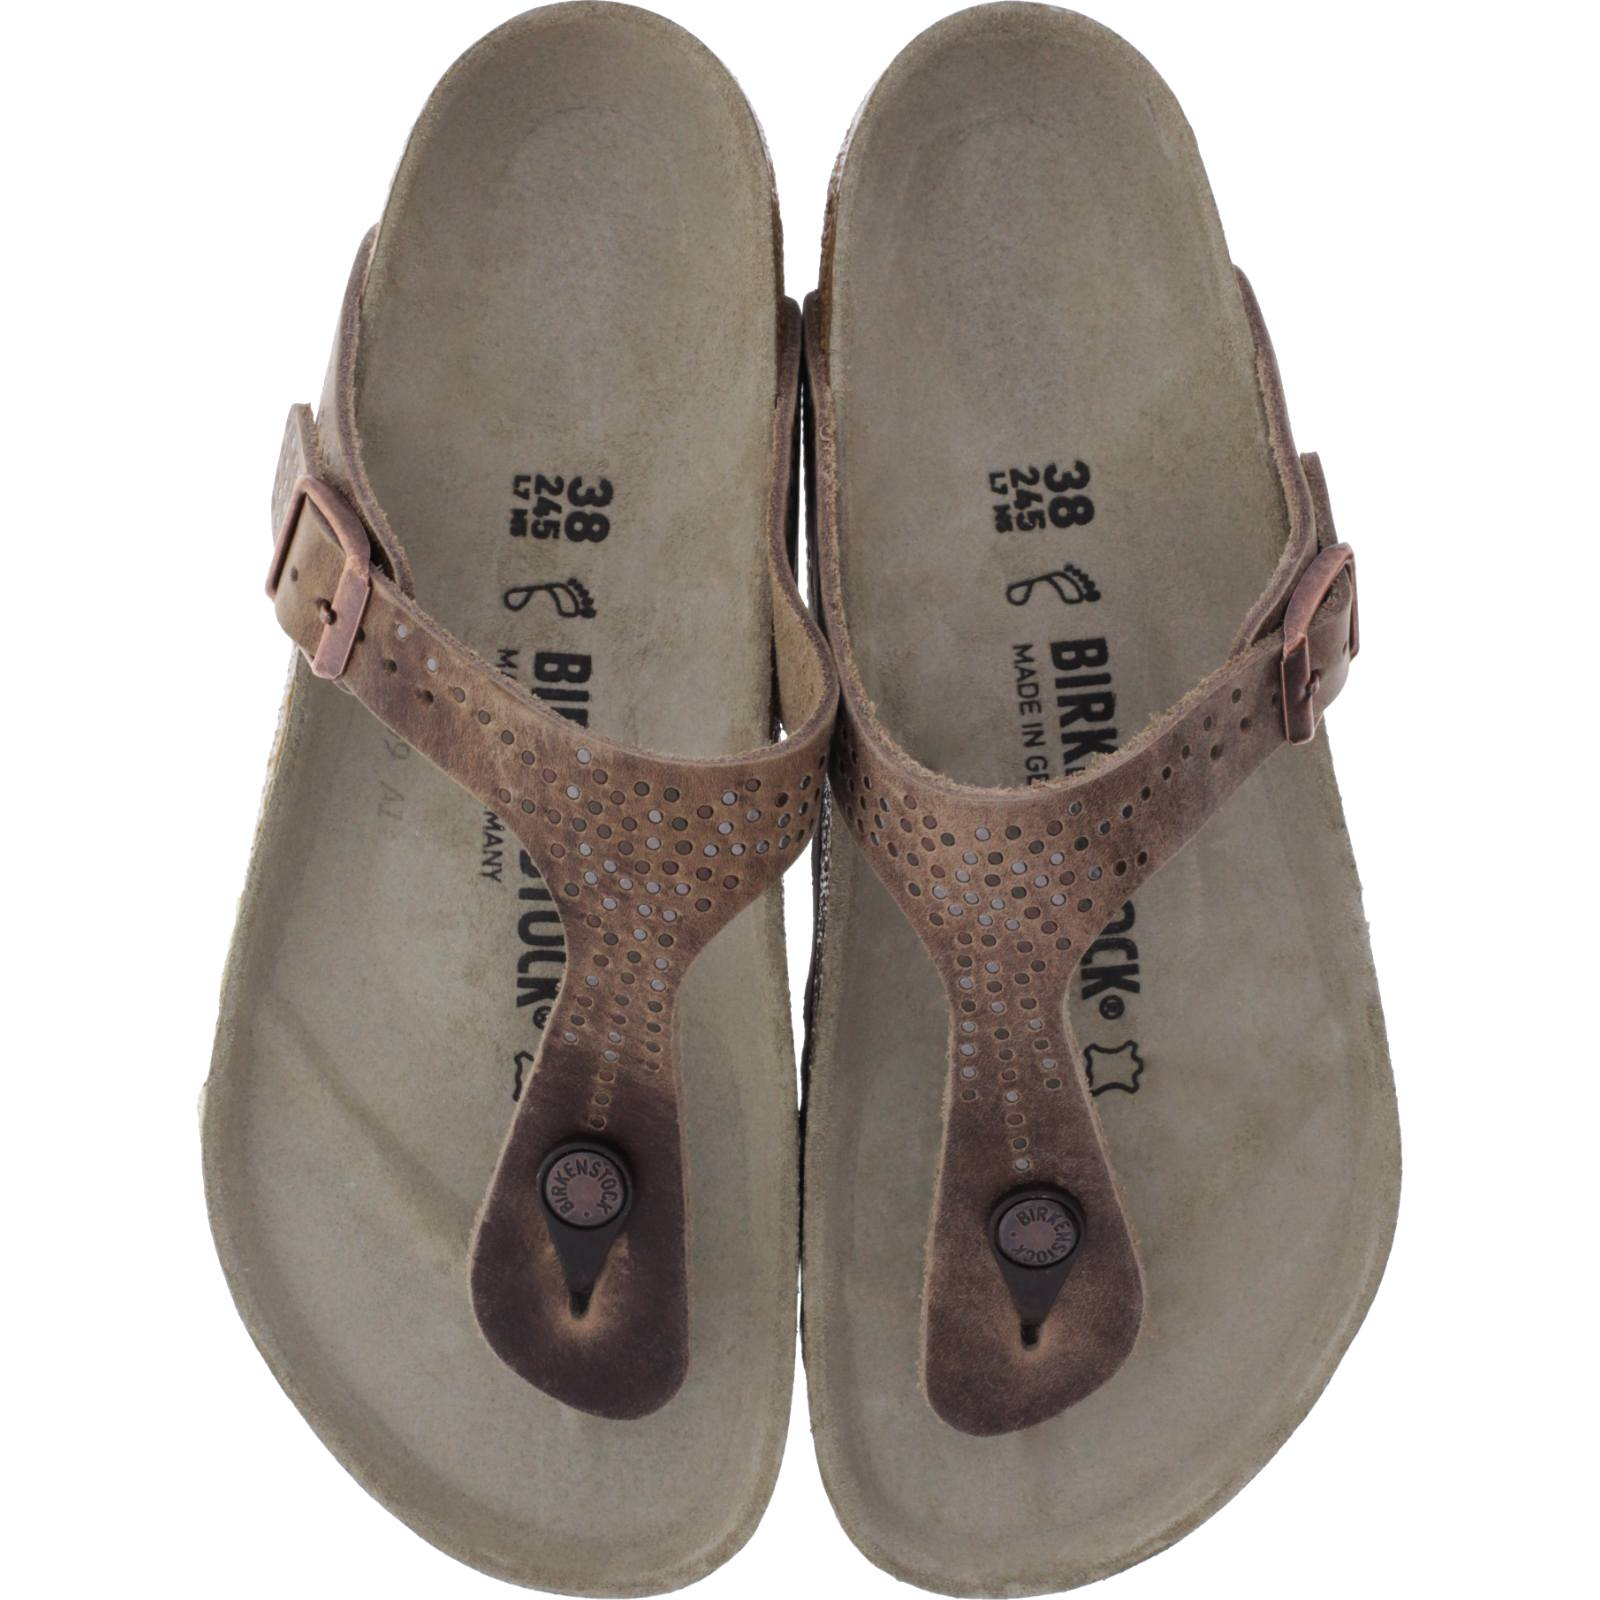 new concept 32b38 d8265 Birkenstock / Modell: Gizeh / Crafted Rivets Tabacco Braun Leder / Weite:  Normal / Art: 1009760